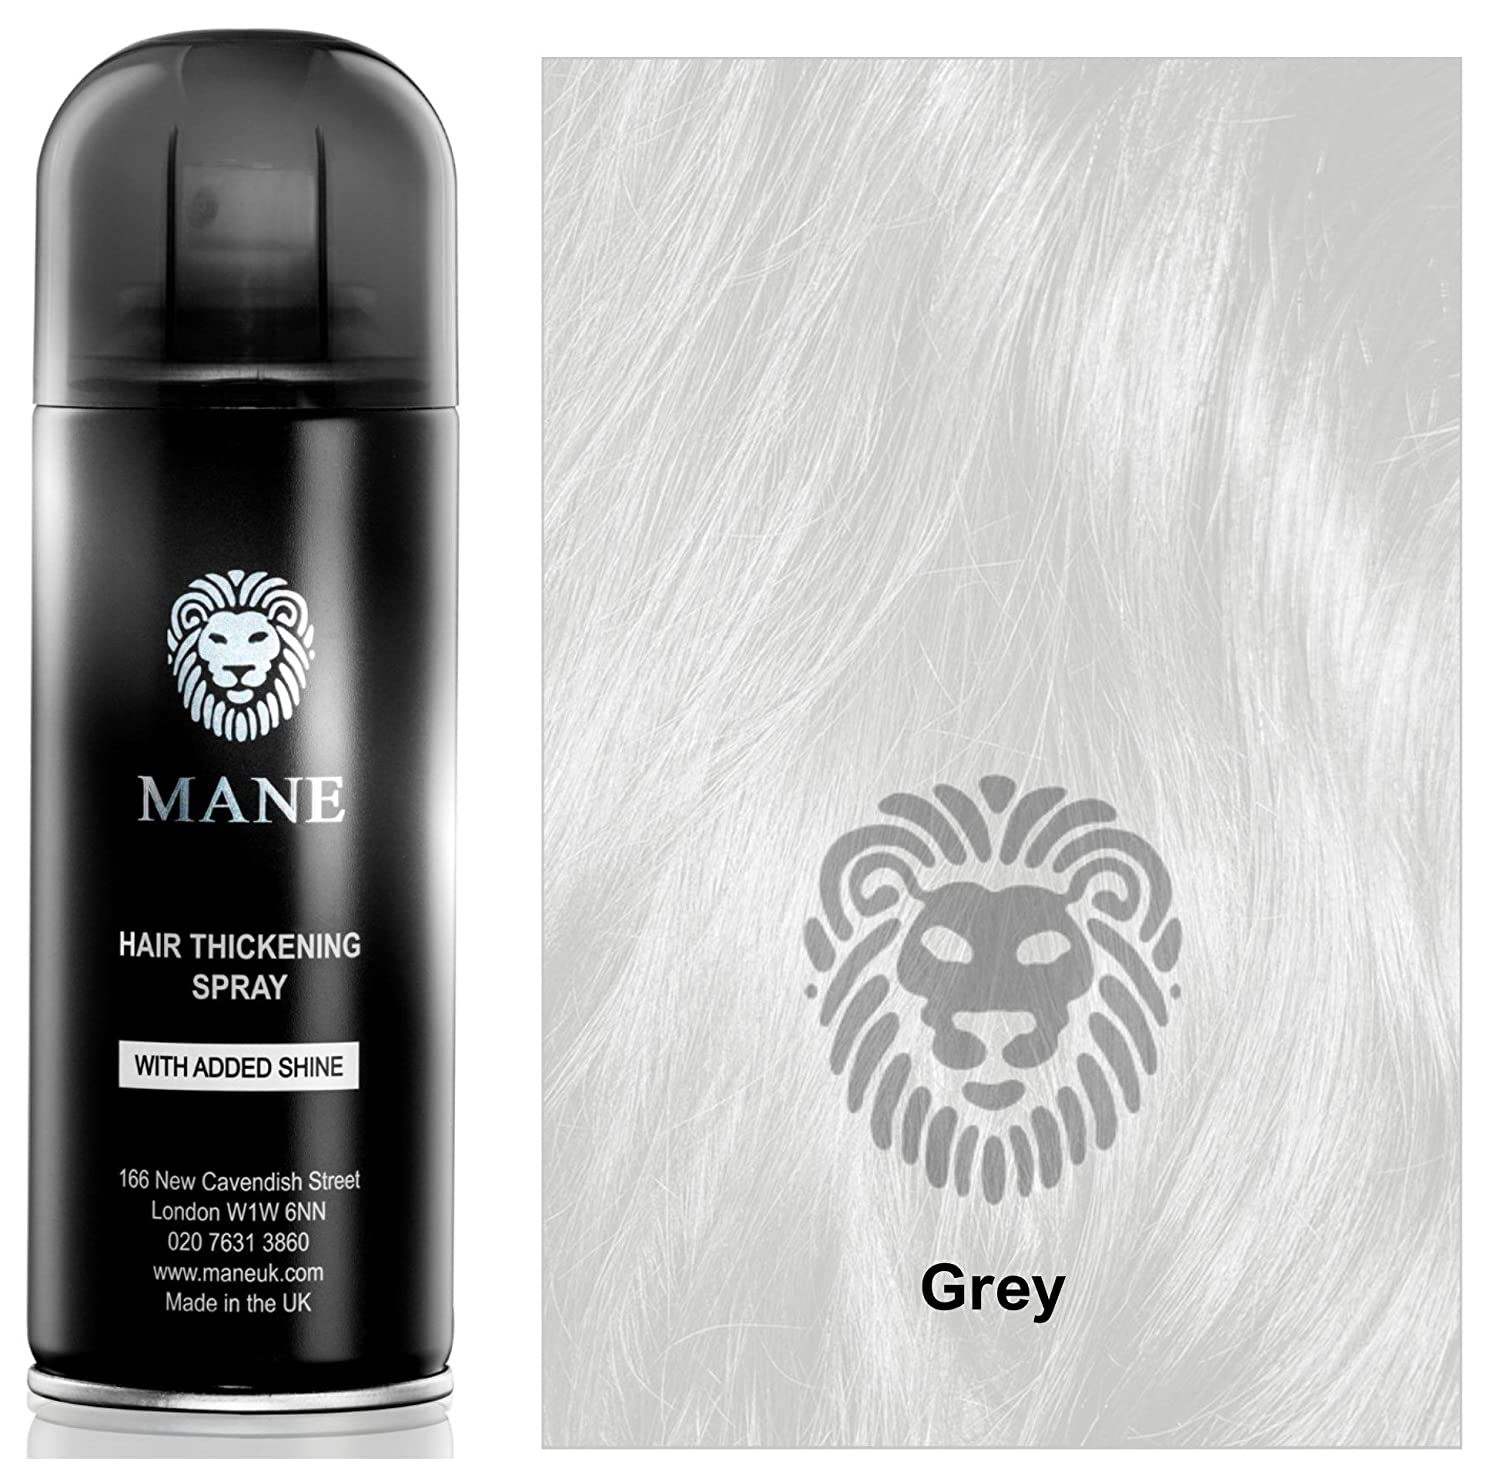 Grey - Hair thickening Spray with added shine by Mane UK - for Hair Loss and thinning Hair and to conceal roots MANE UK LTD GRMHT